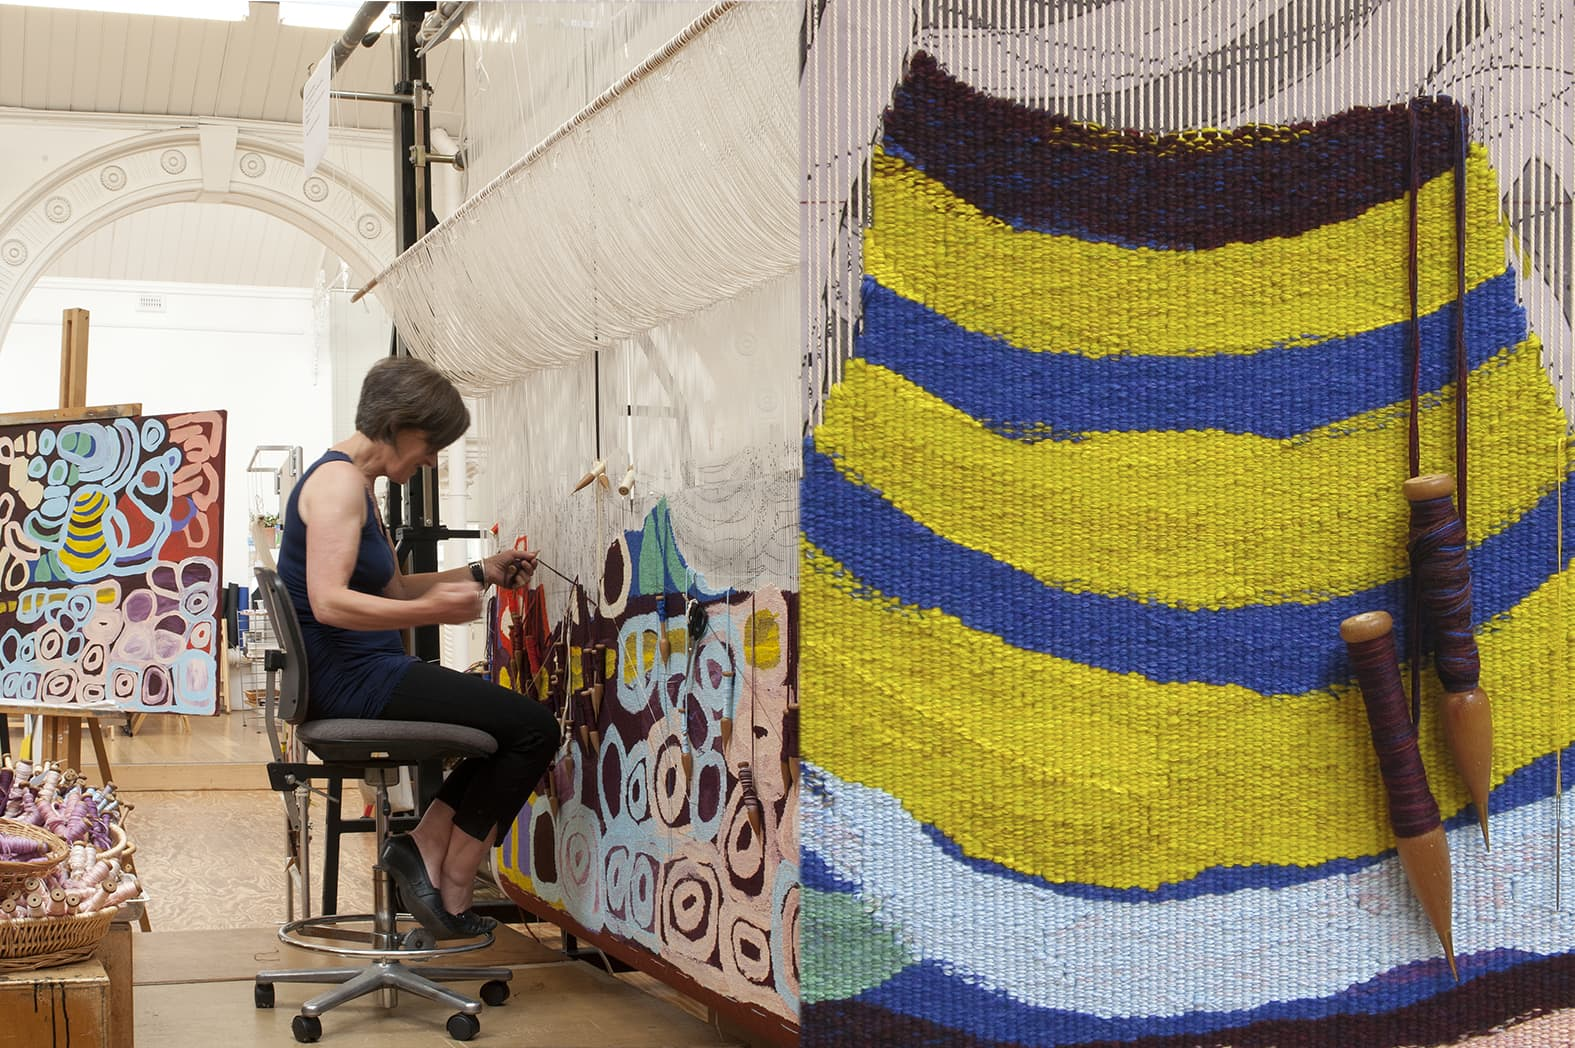 Left: ATW weaver Pamela Joyce working on 'Kungkarrakalpa (The Seven Sisters)' designed by Anmanari Brown in 2012. Photograph: Viki Petherbridge. Right: Detail of 'Kungkarrakalpa (The Seven Sisters)' designed by Anmanari Brown in 2012. Photograph: ATW.